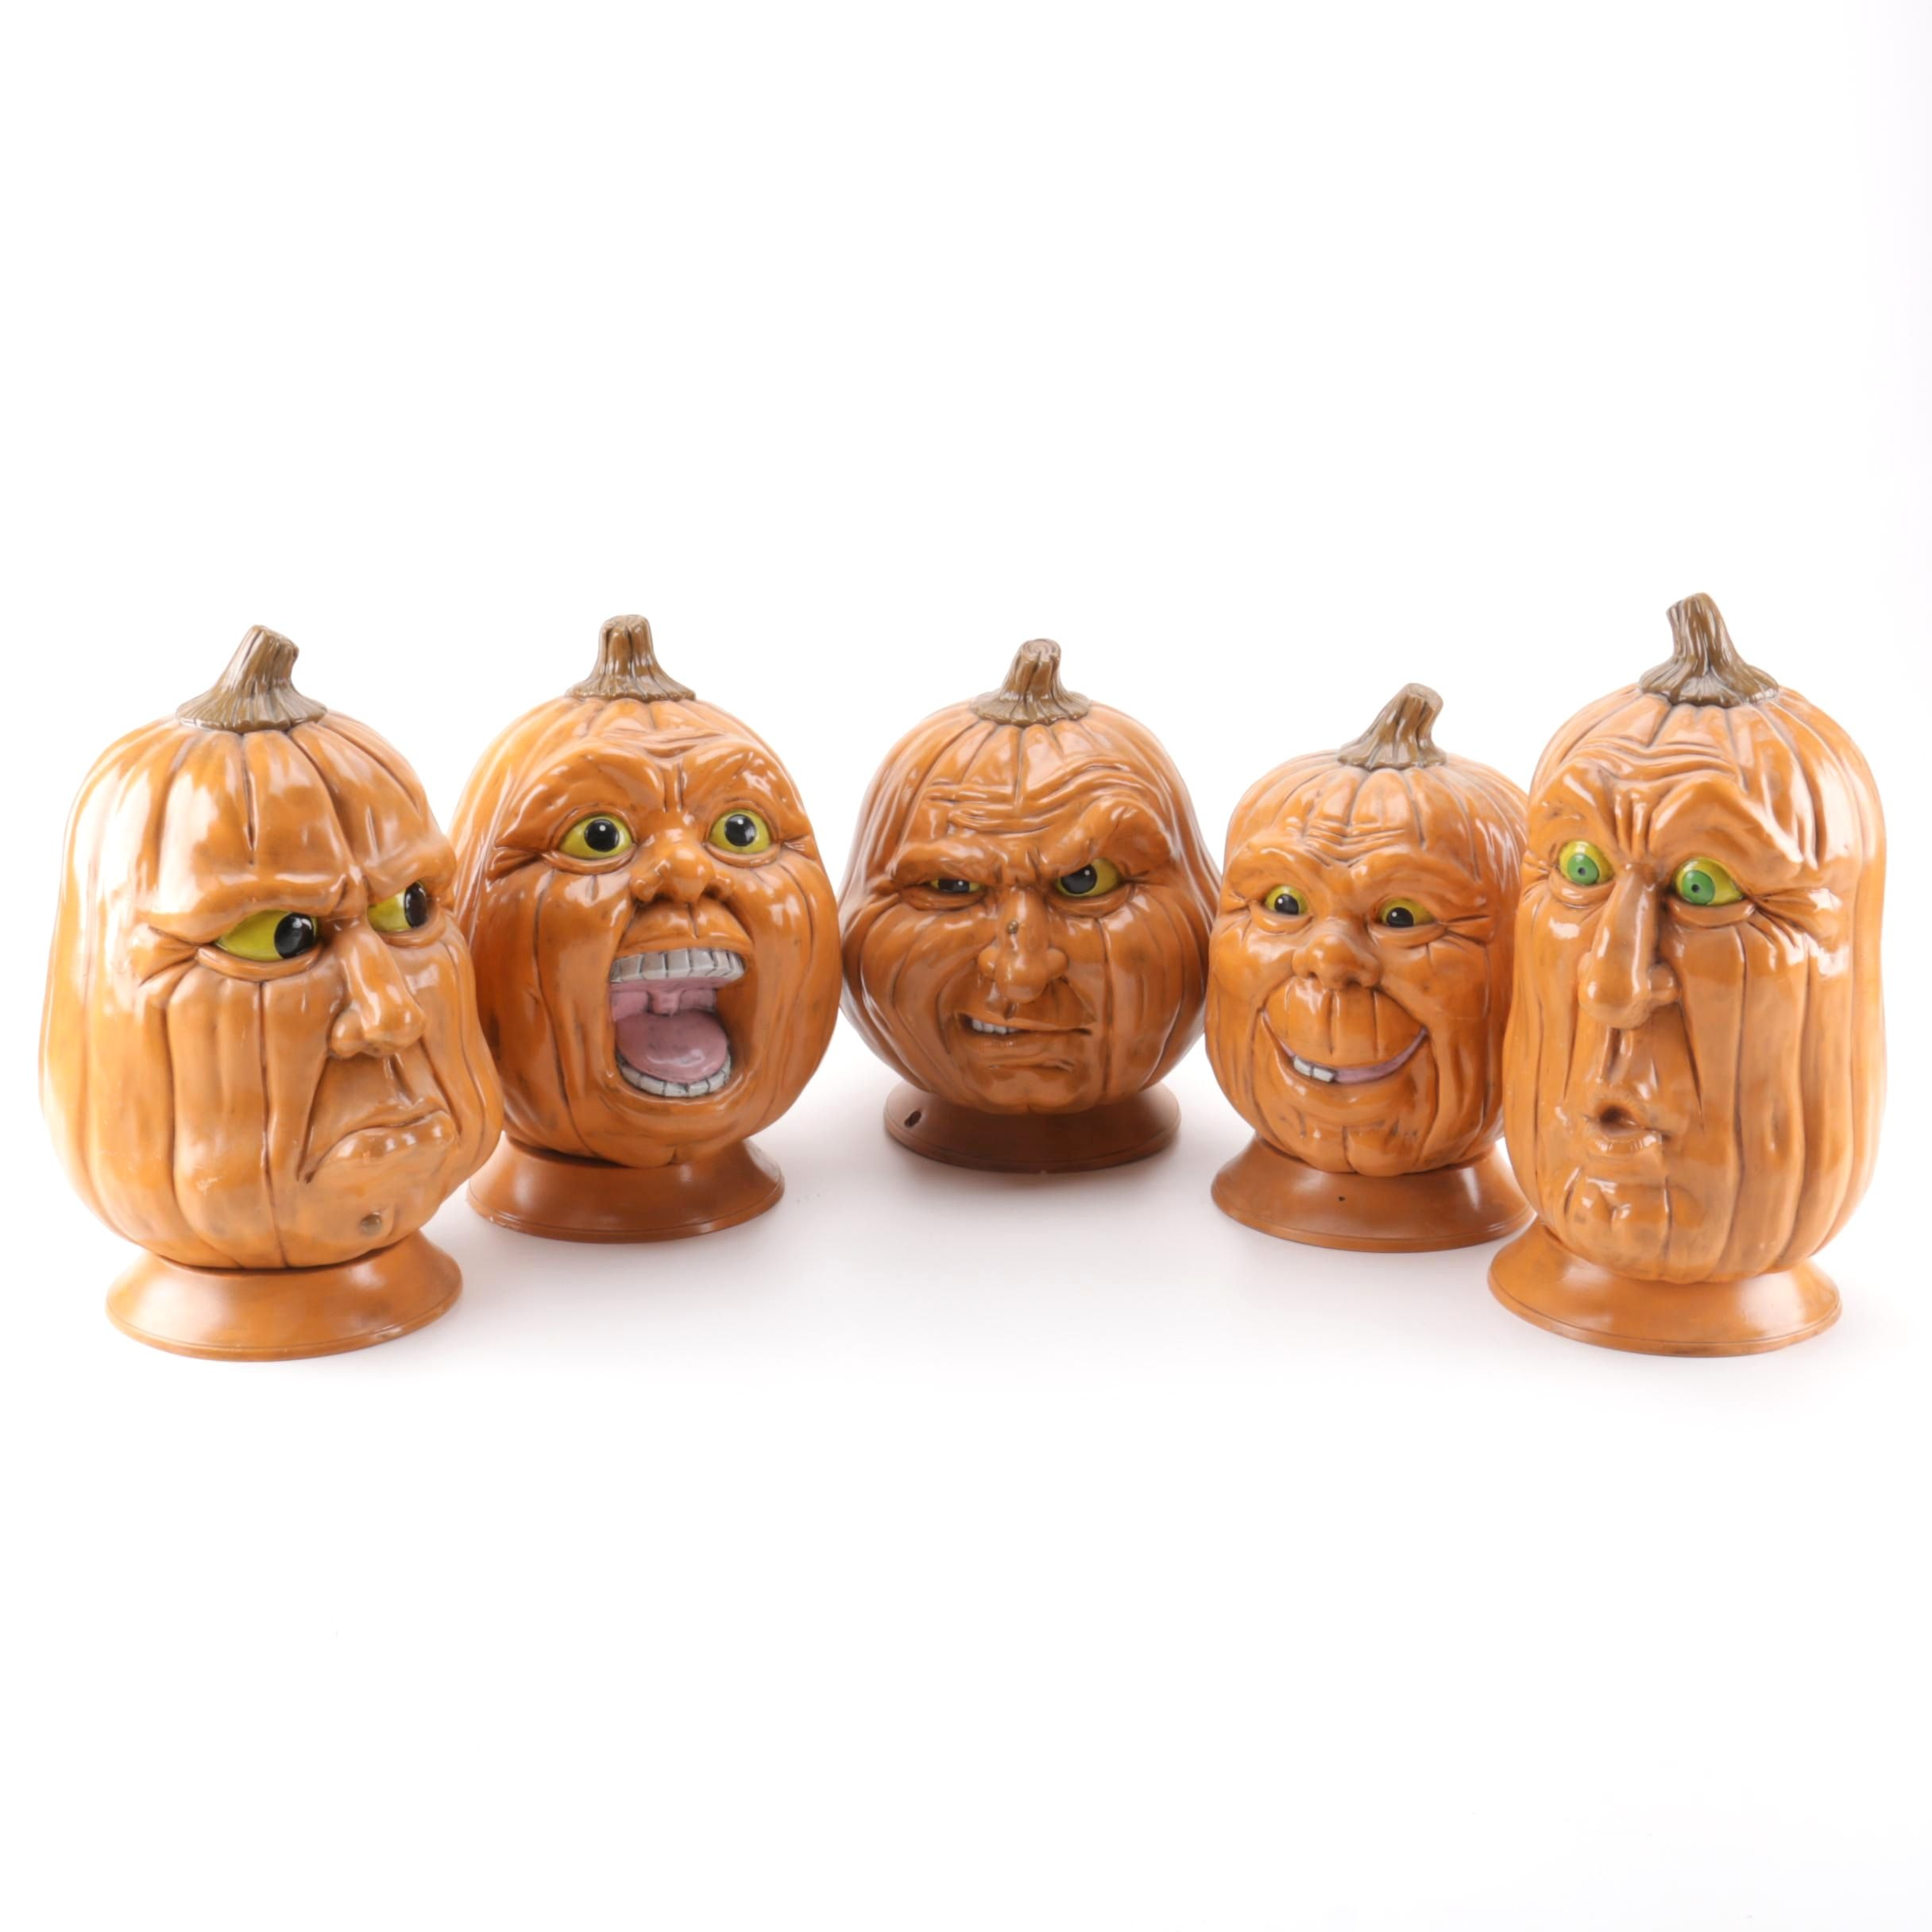 Ceramic Pumpkins with Facial Expressions